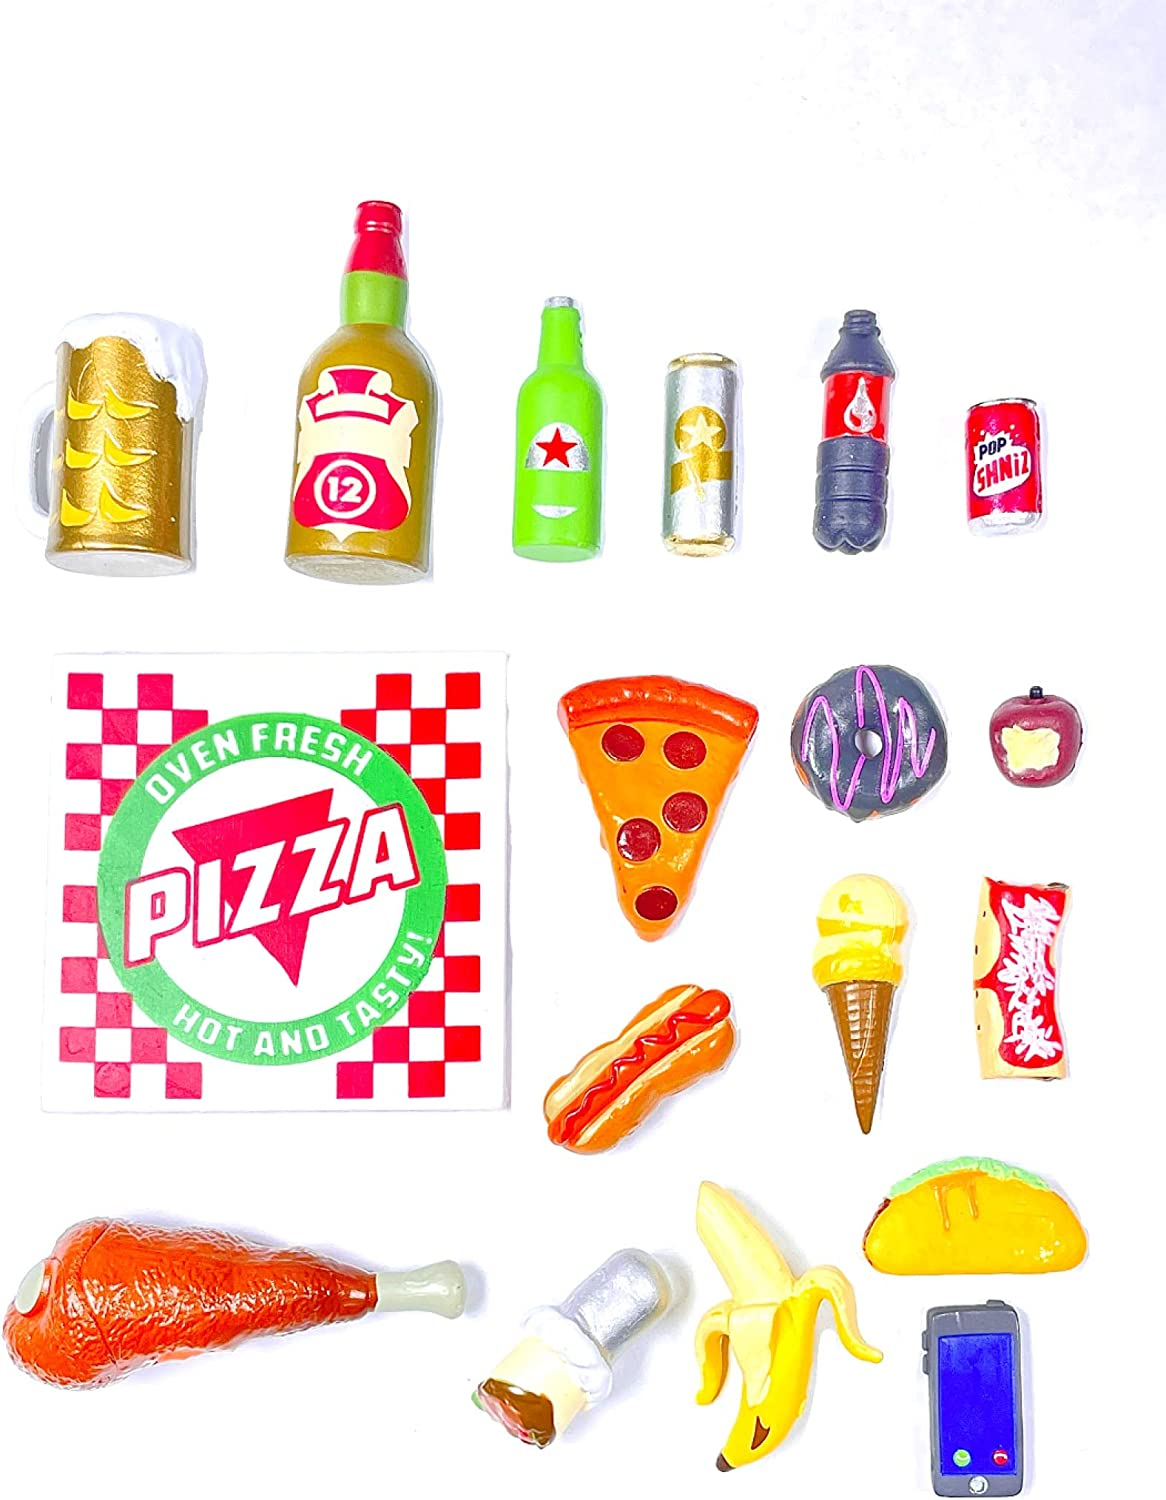 Super Action Stuff Super Foodie Recooked Action Figure Accessories 1:12 and Six inch Scale Miniature Plastic Food Accessories for 5, 6 and 7 inch Action Figure Photography Dollhouse